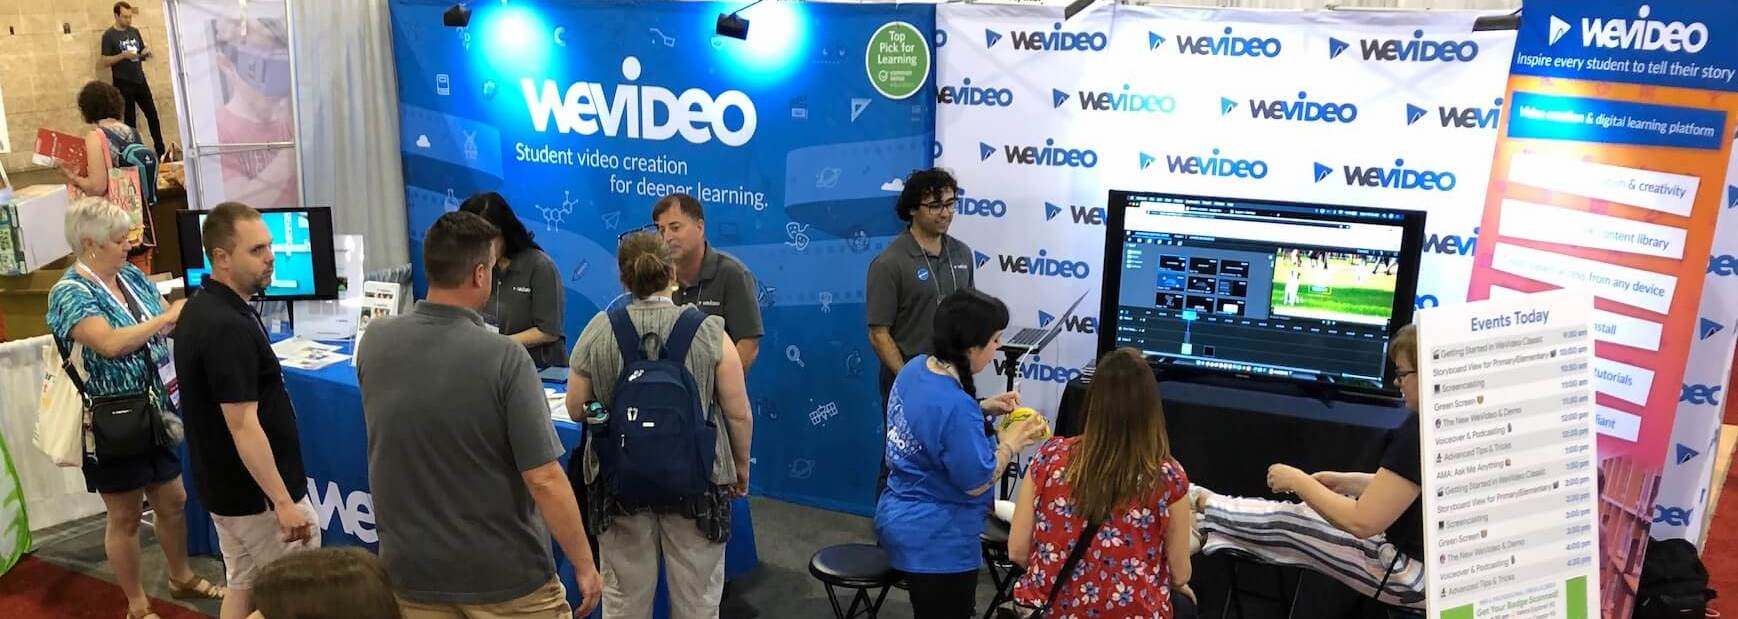 iste-2019-booth